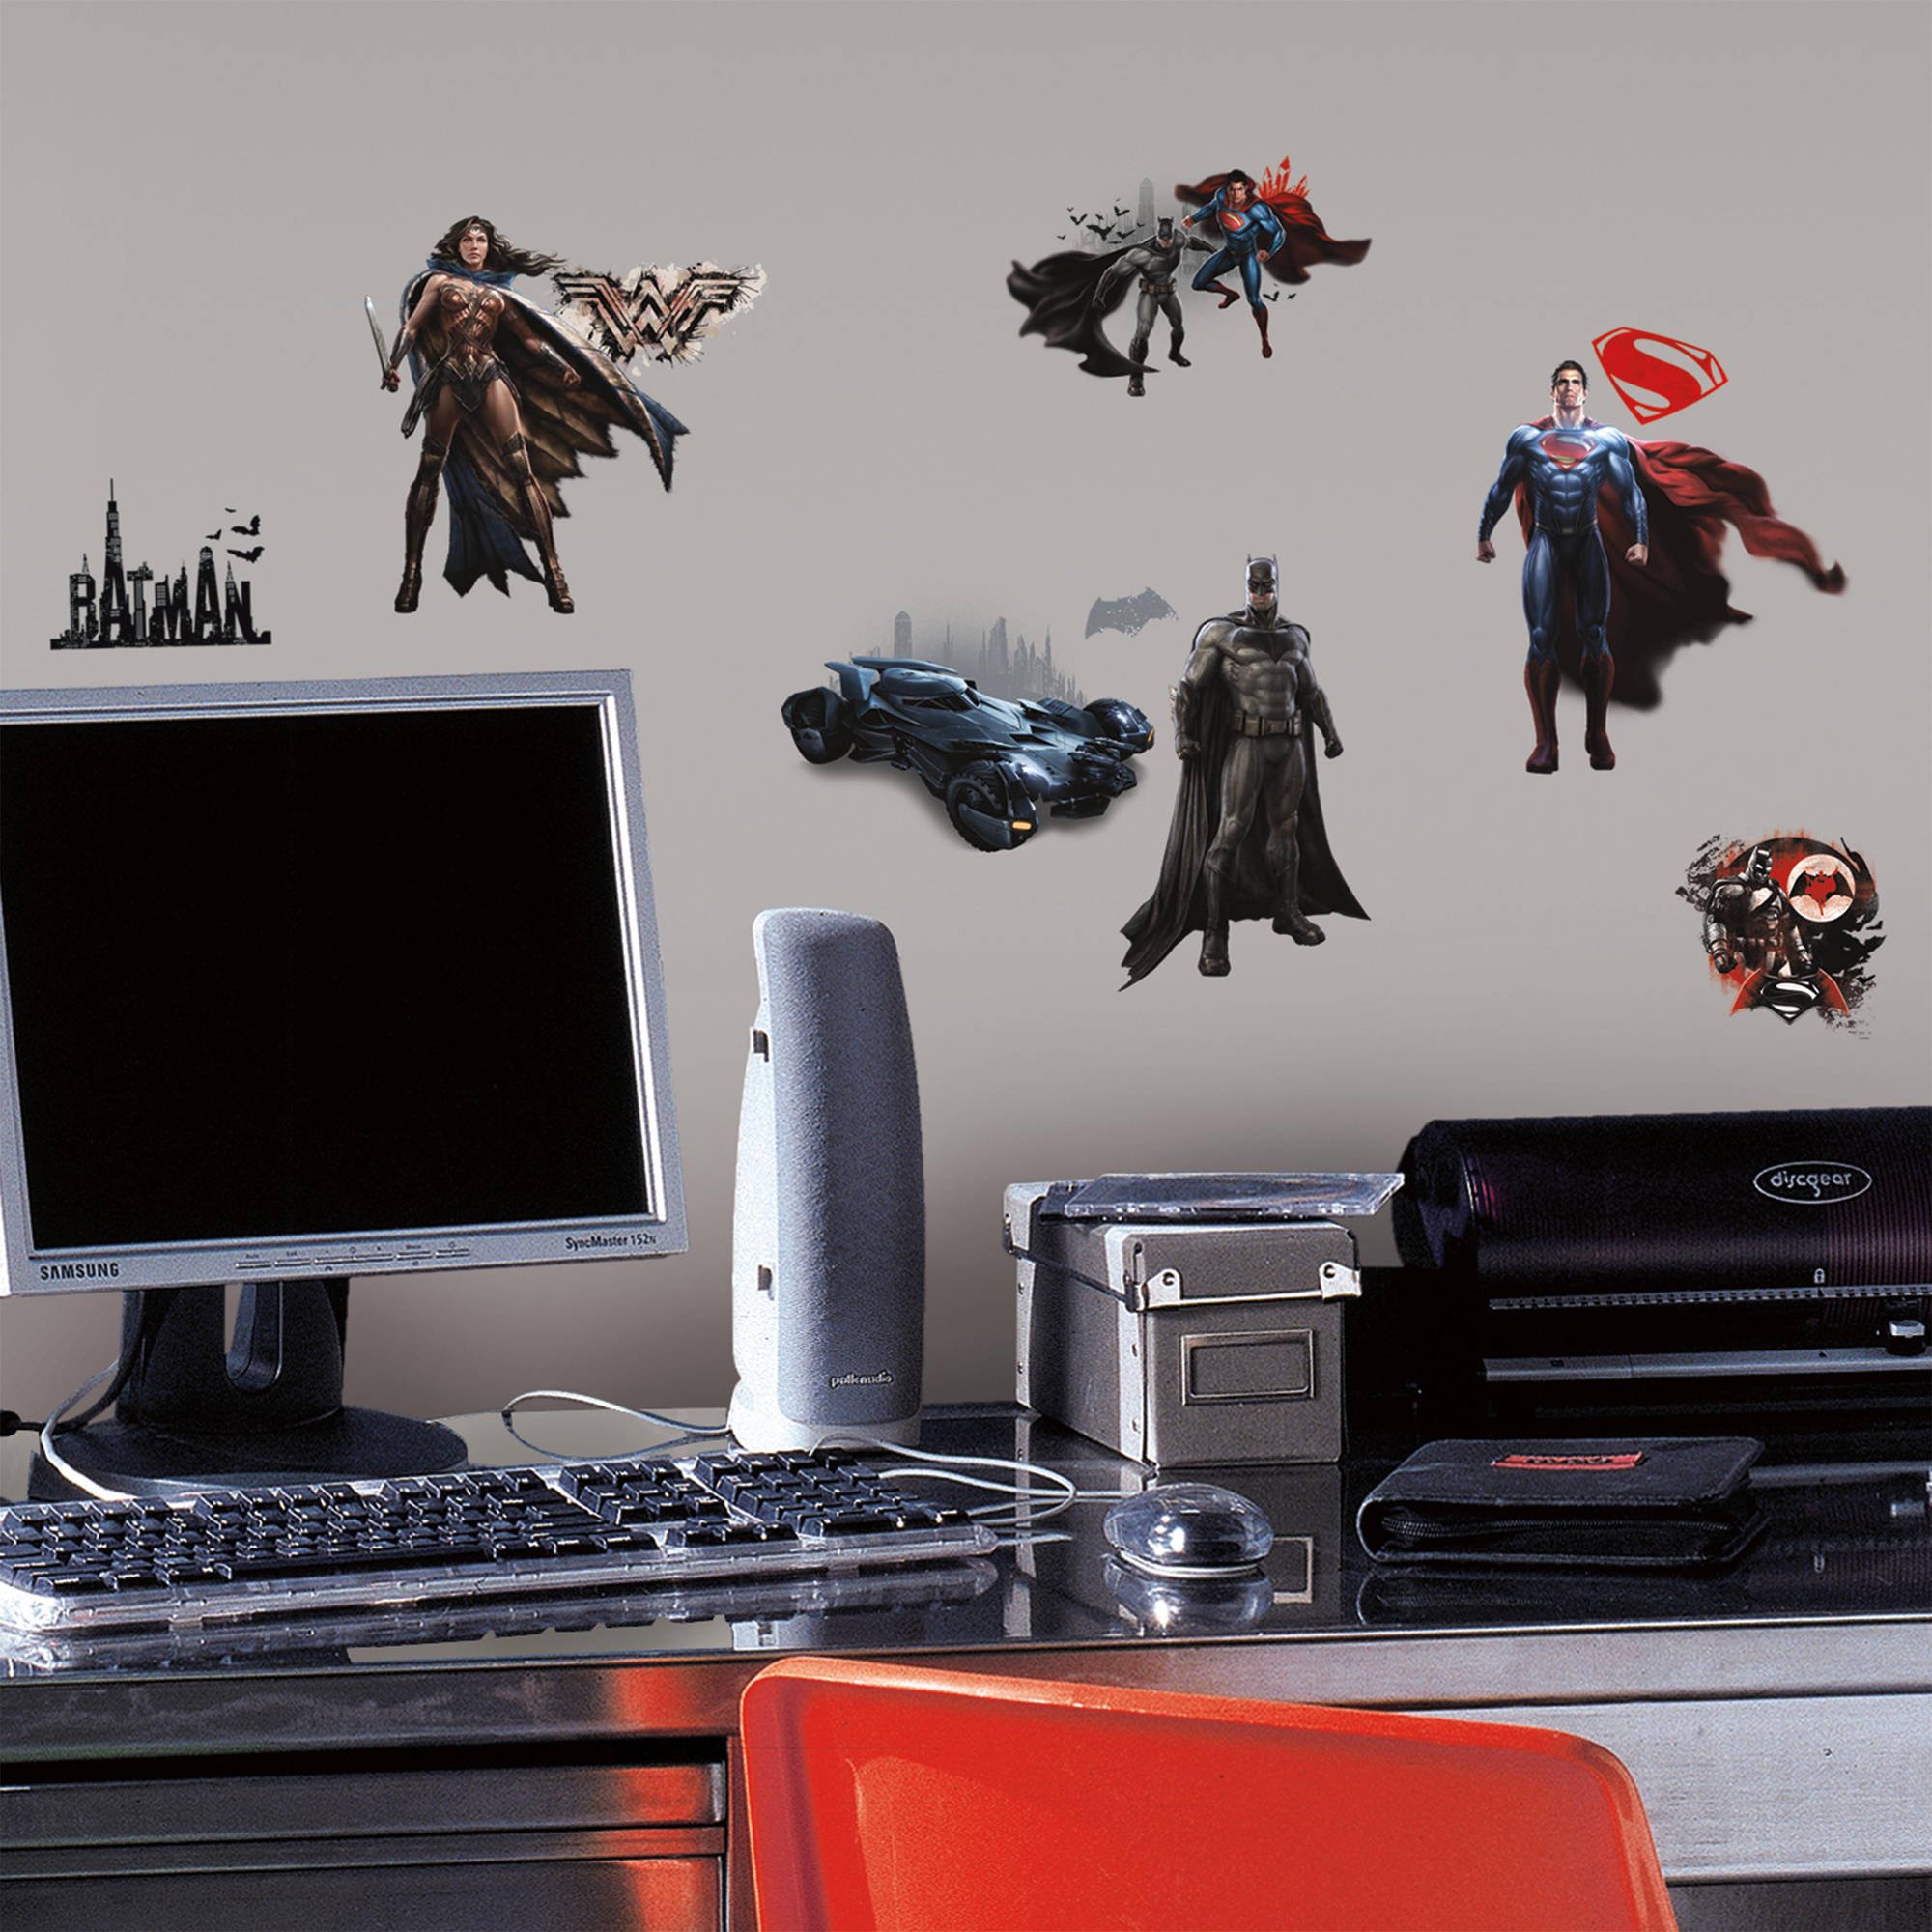 RoomMates Batman Vs Superman Peel And Stick Wall Decals   Walmart.com